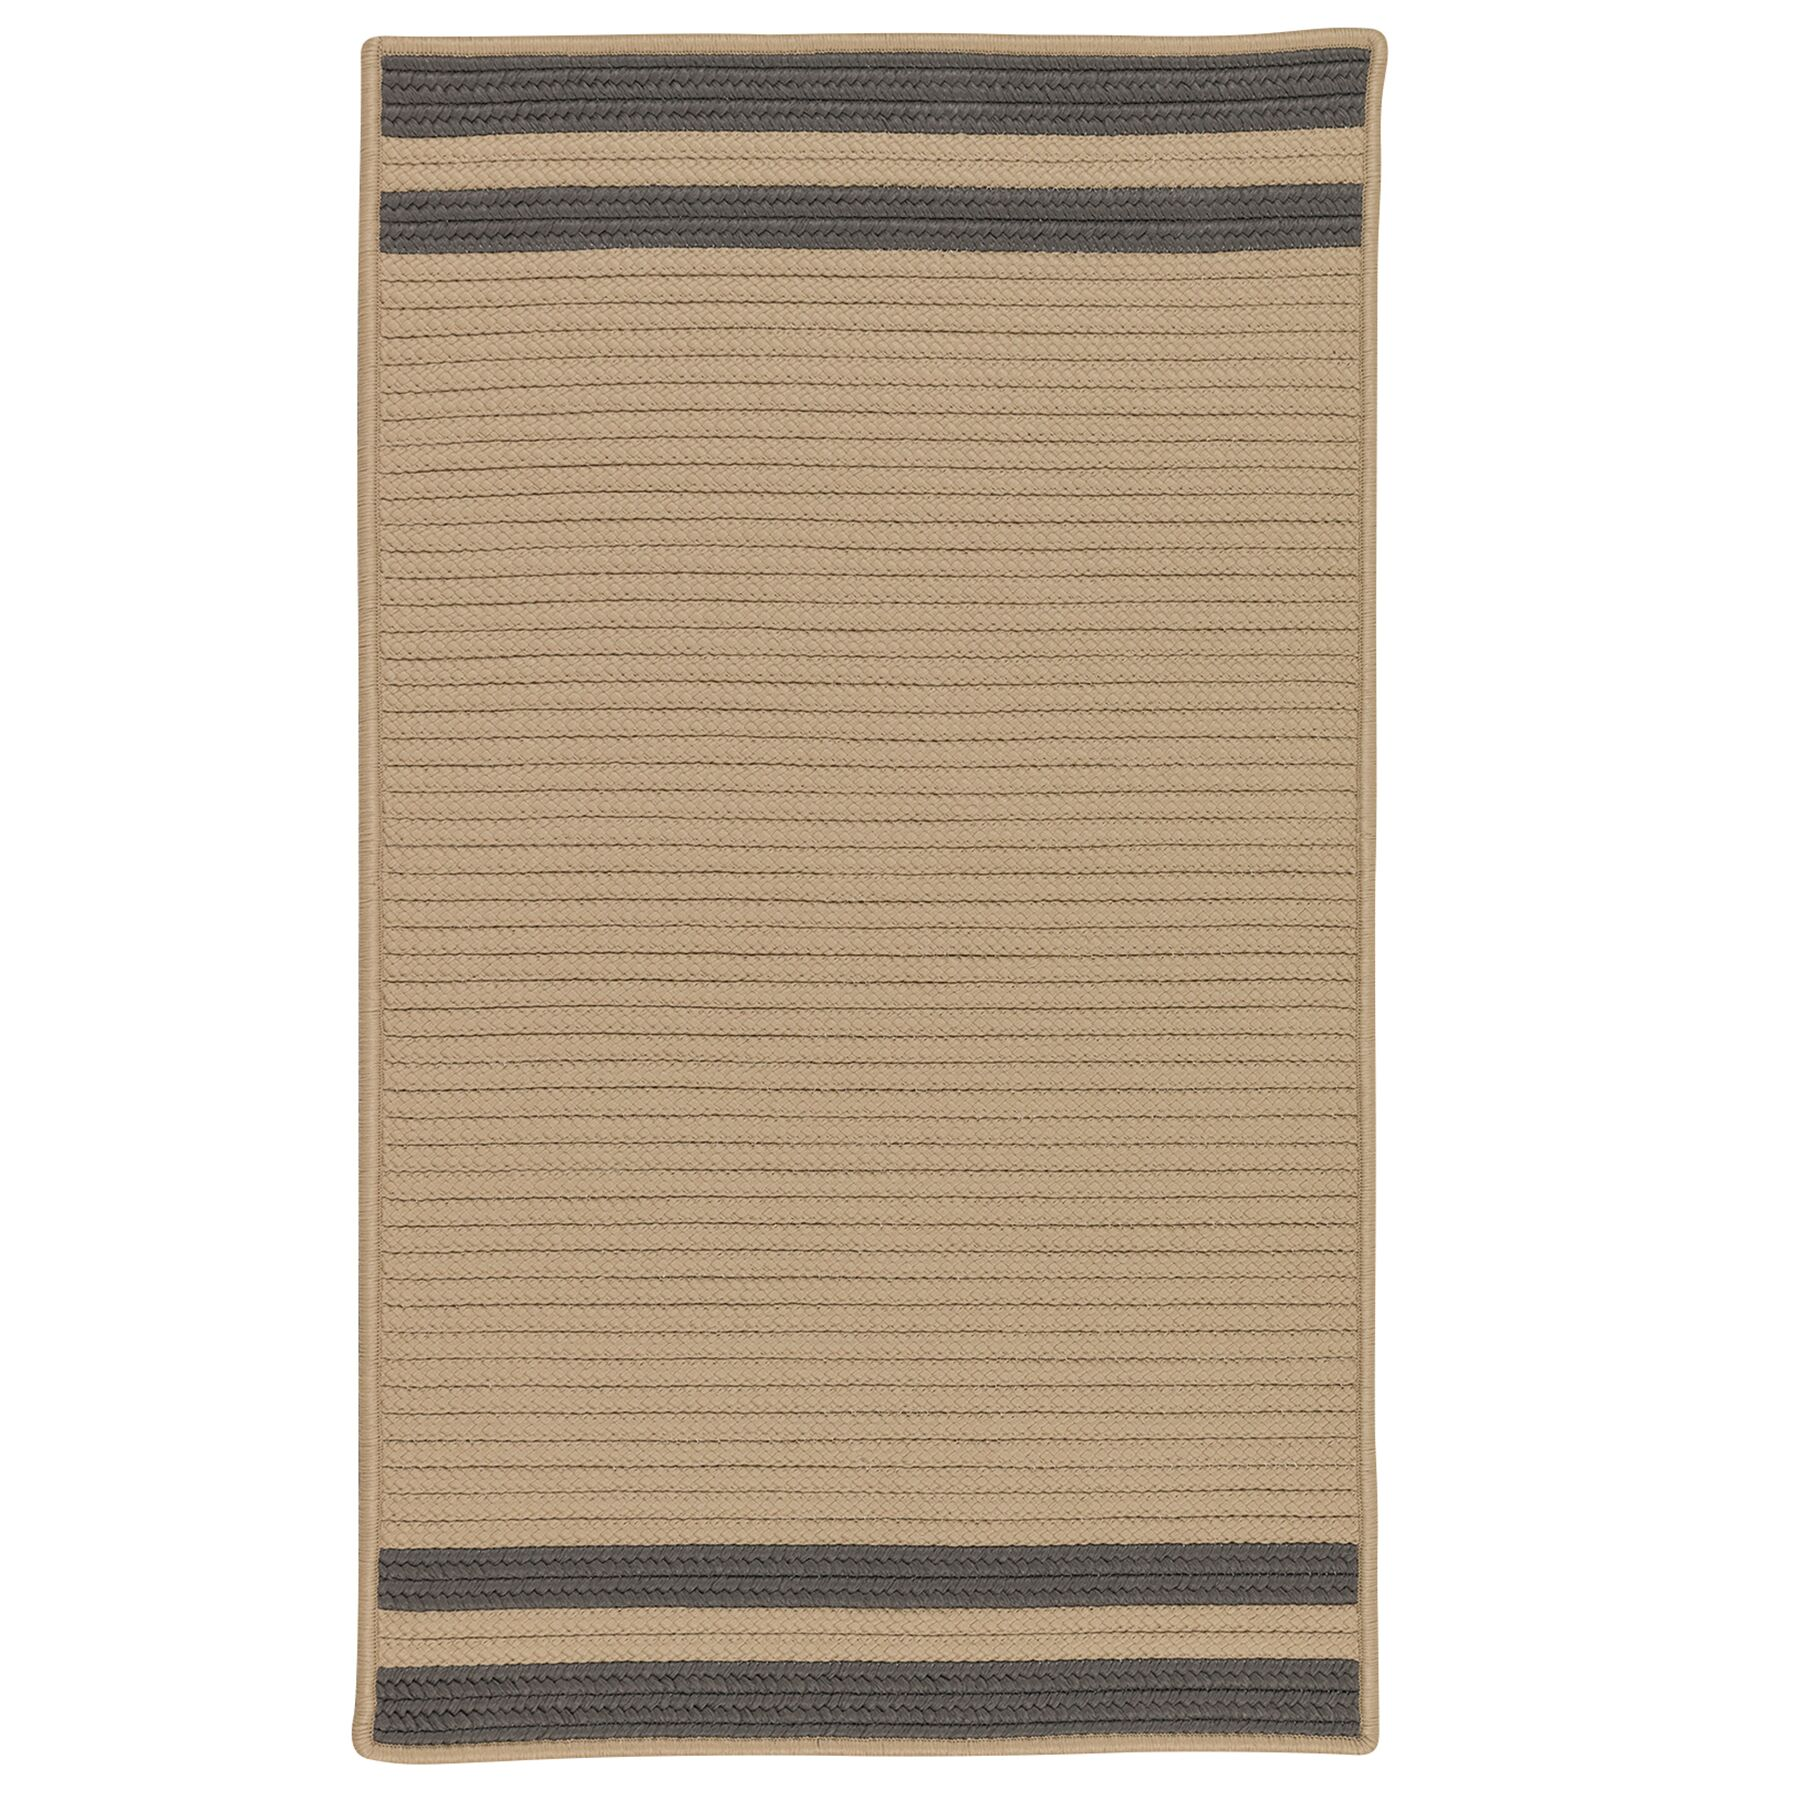 Kellie Stripe Hand-Braided Brown/Gray Indoor/Outdoor Area Rug Rug Size: Rectangle 6' x 9'